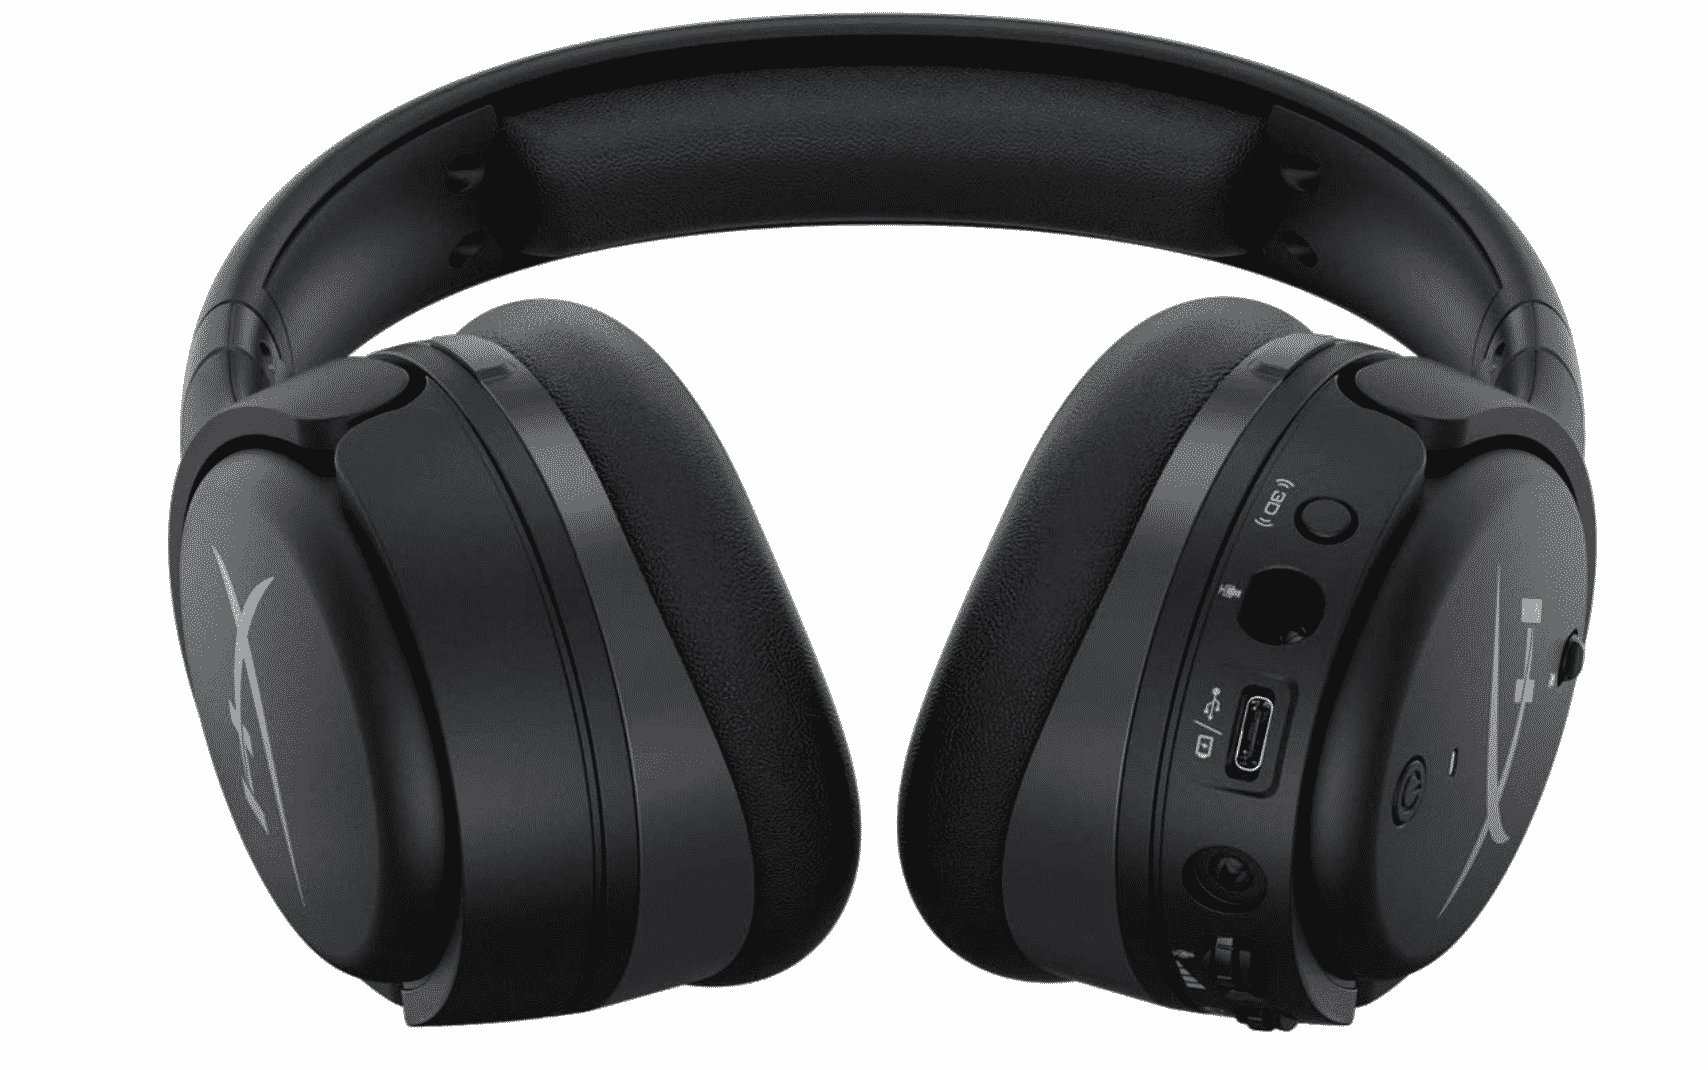 HyperX Cloud Orbit S-Gaming Headset